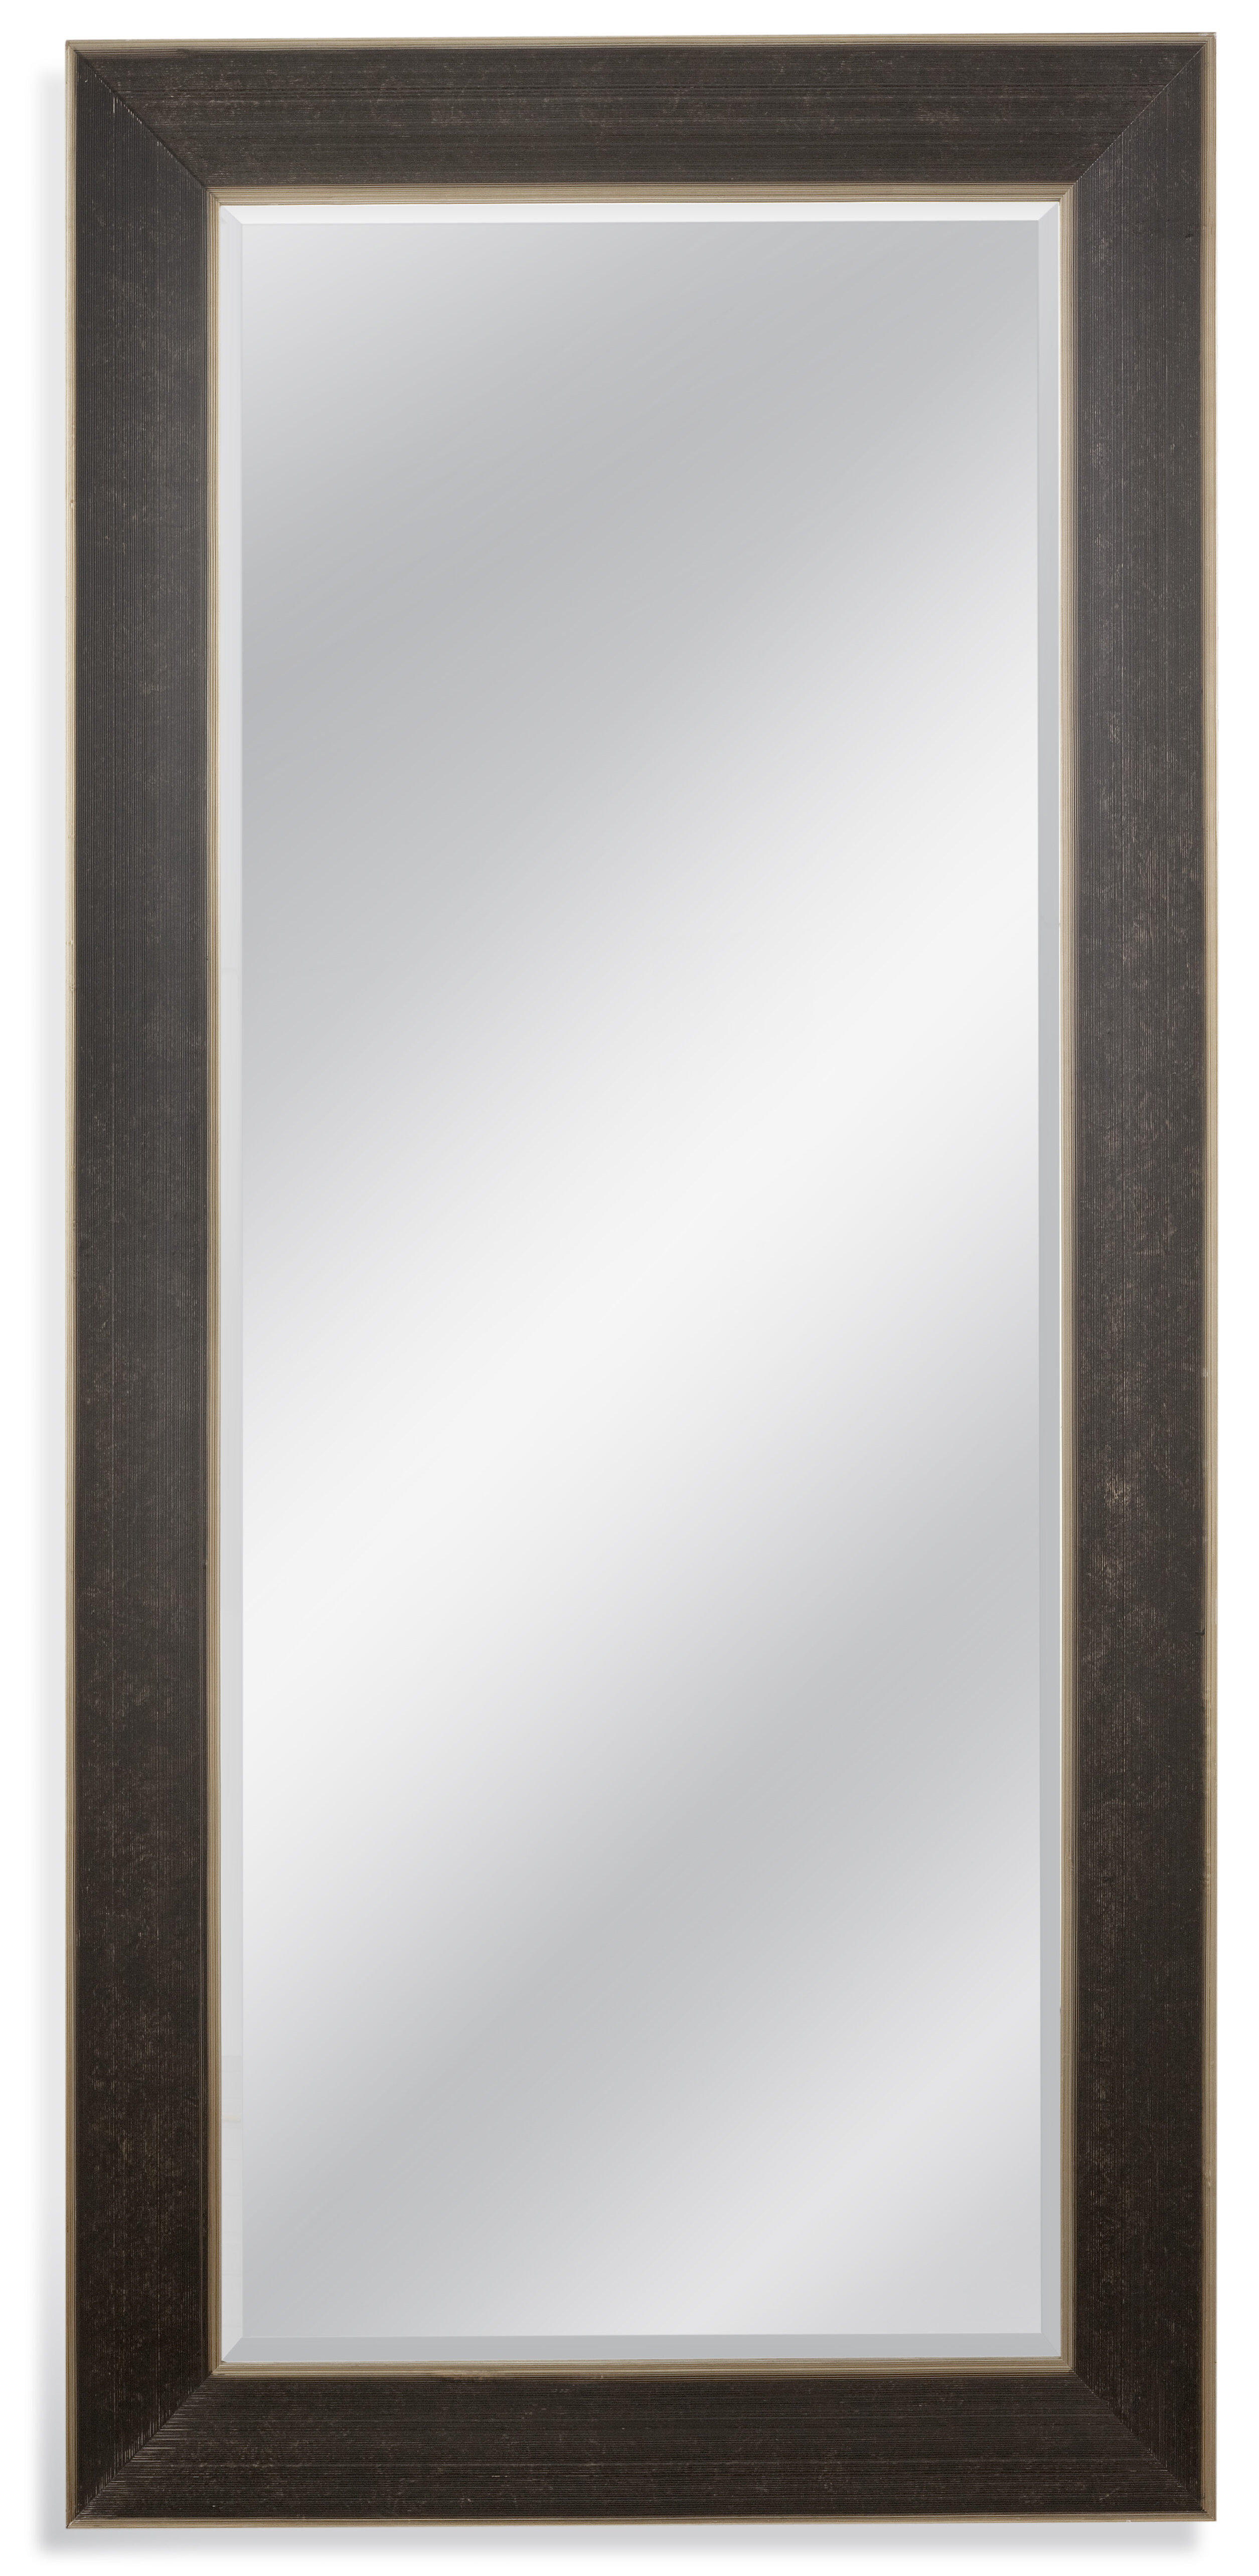 Gold Darby Home Co Full Length Mirrors You Ll Love In 2021 Wayfair